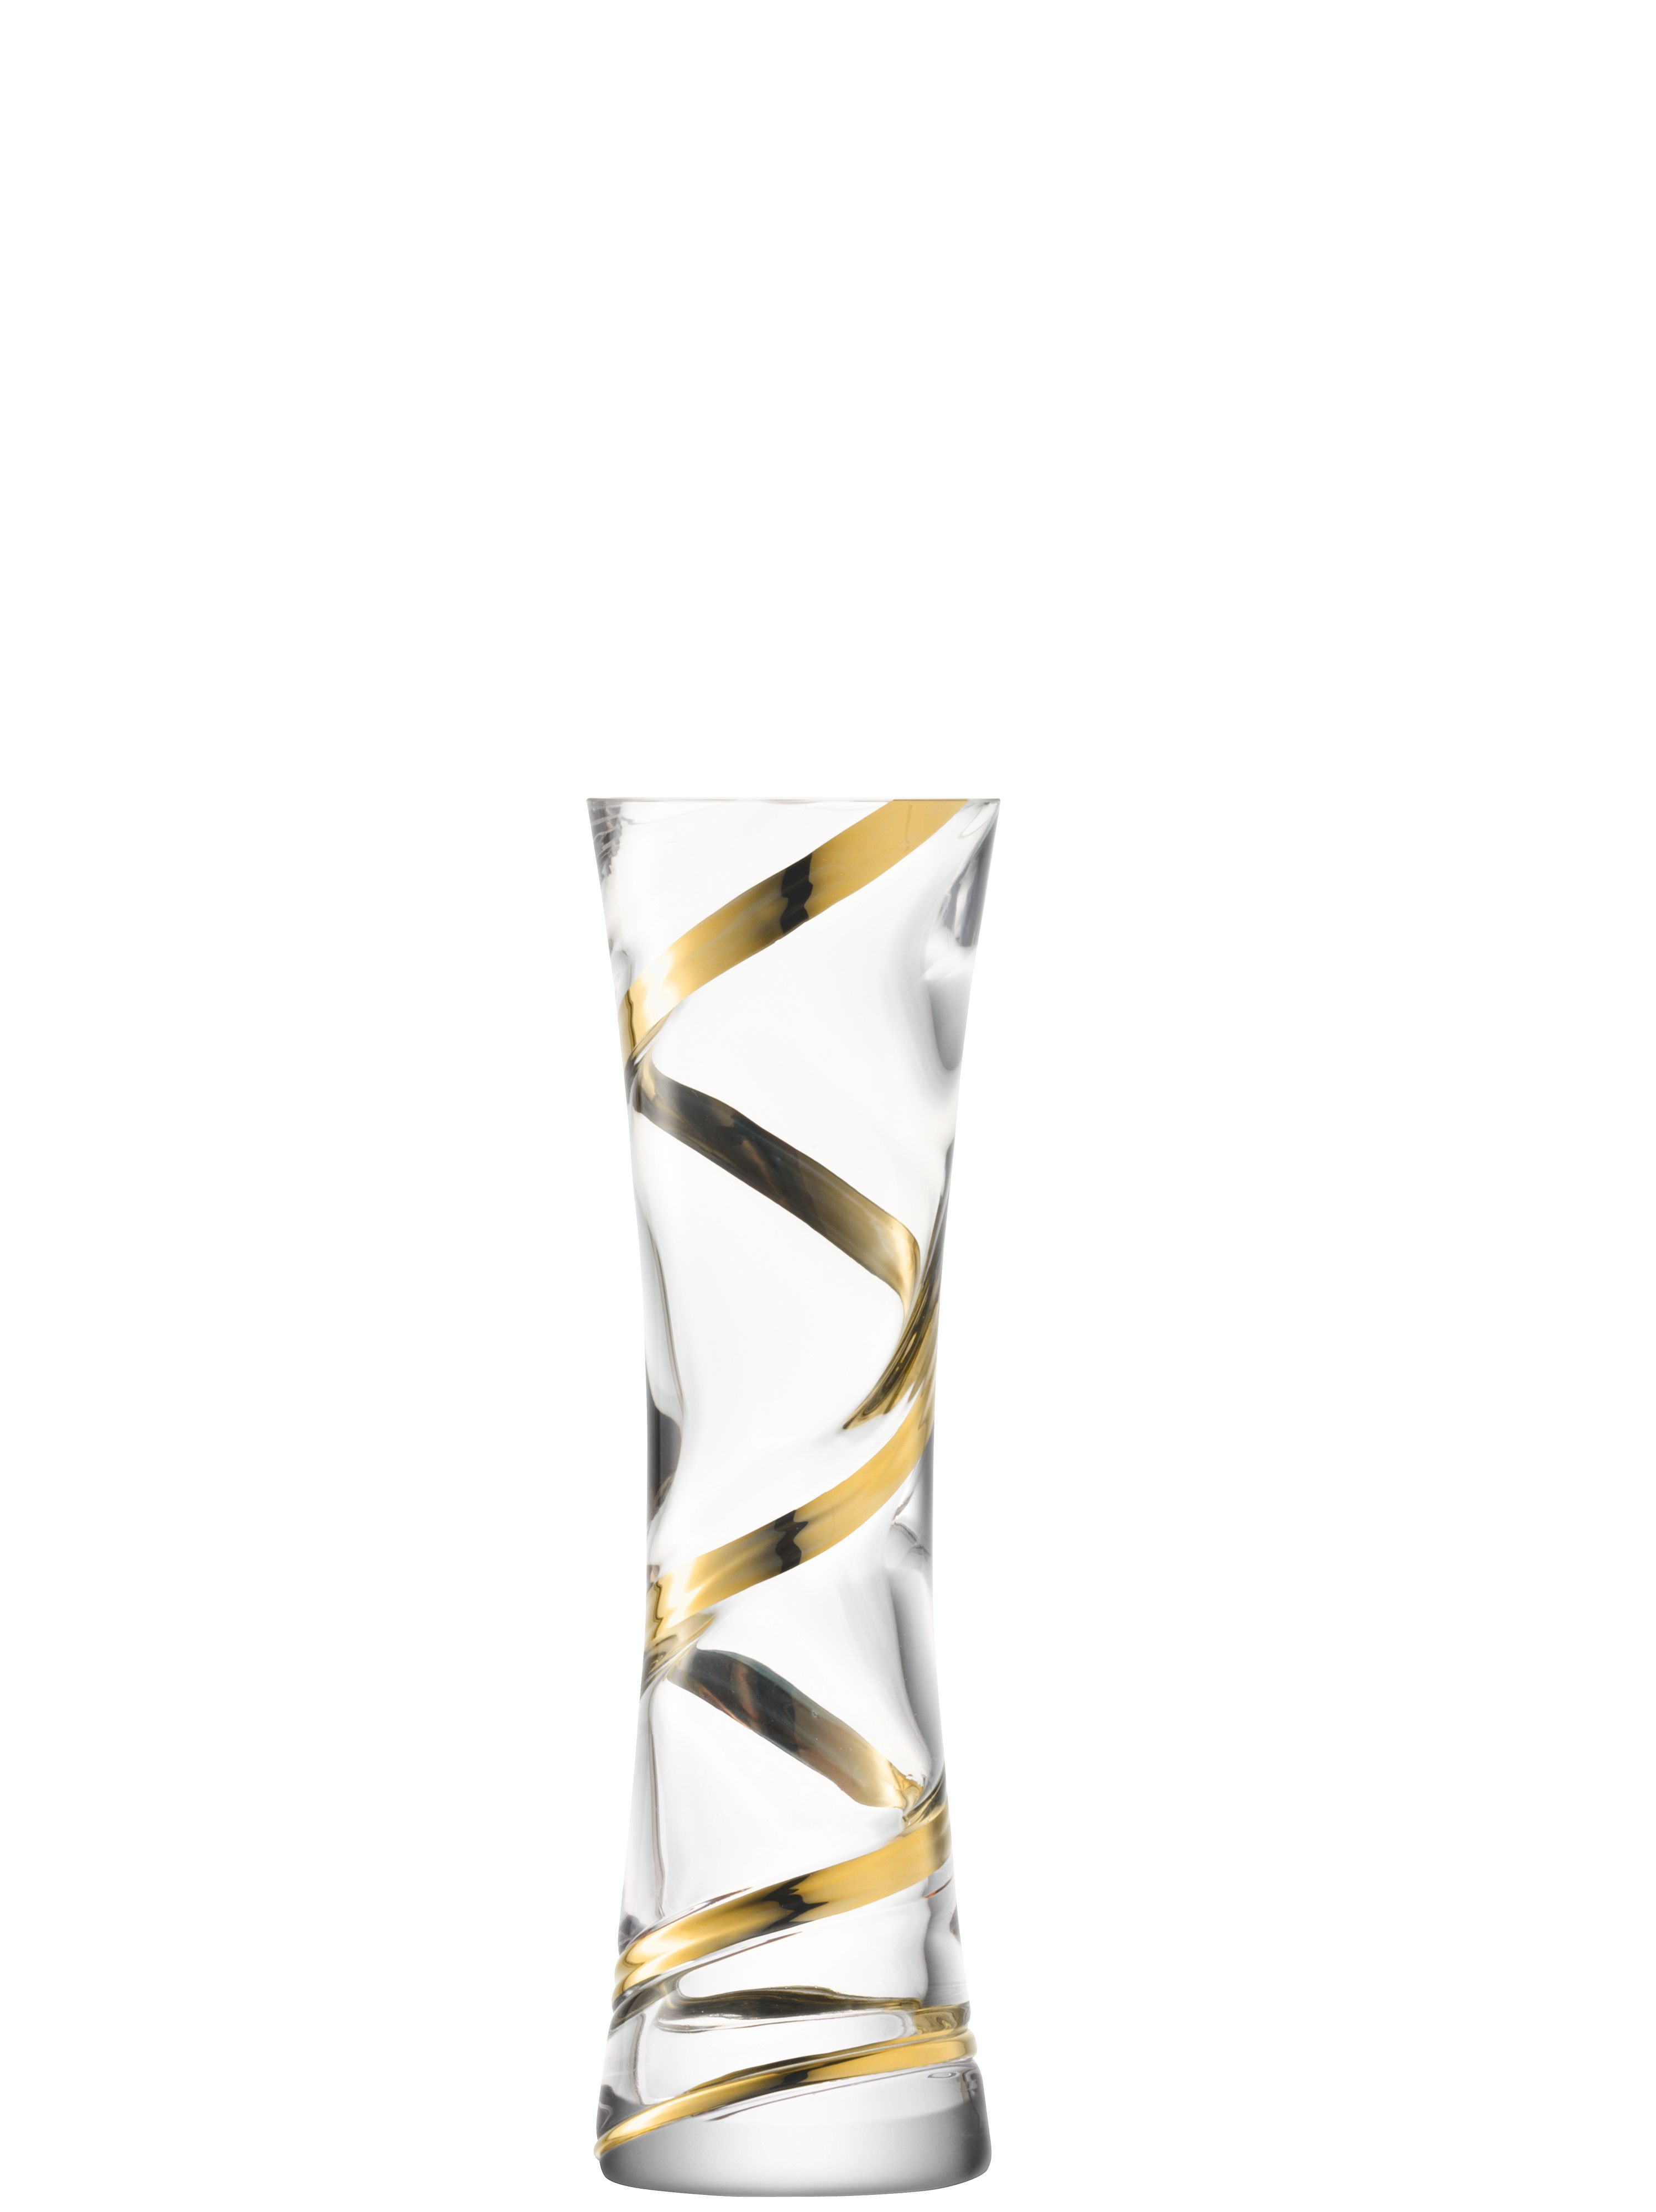 Malika Grand spiral vase height 34cm in gold